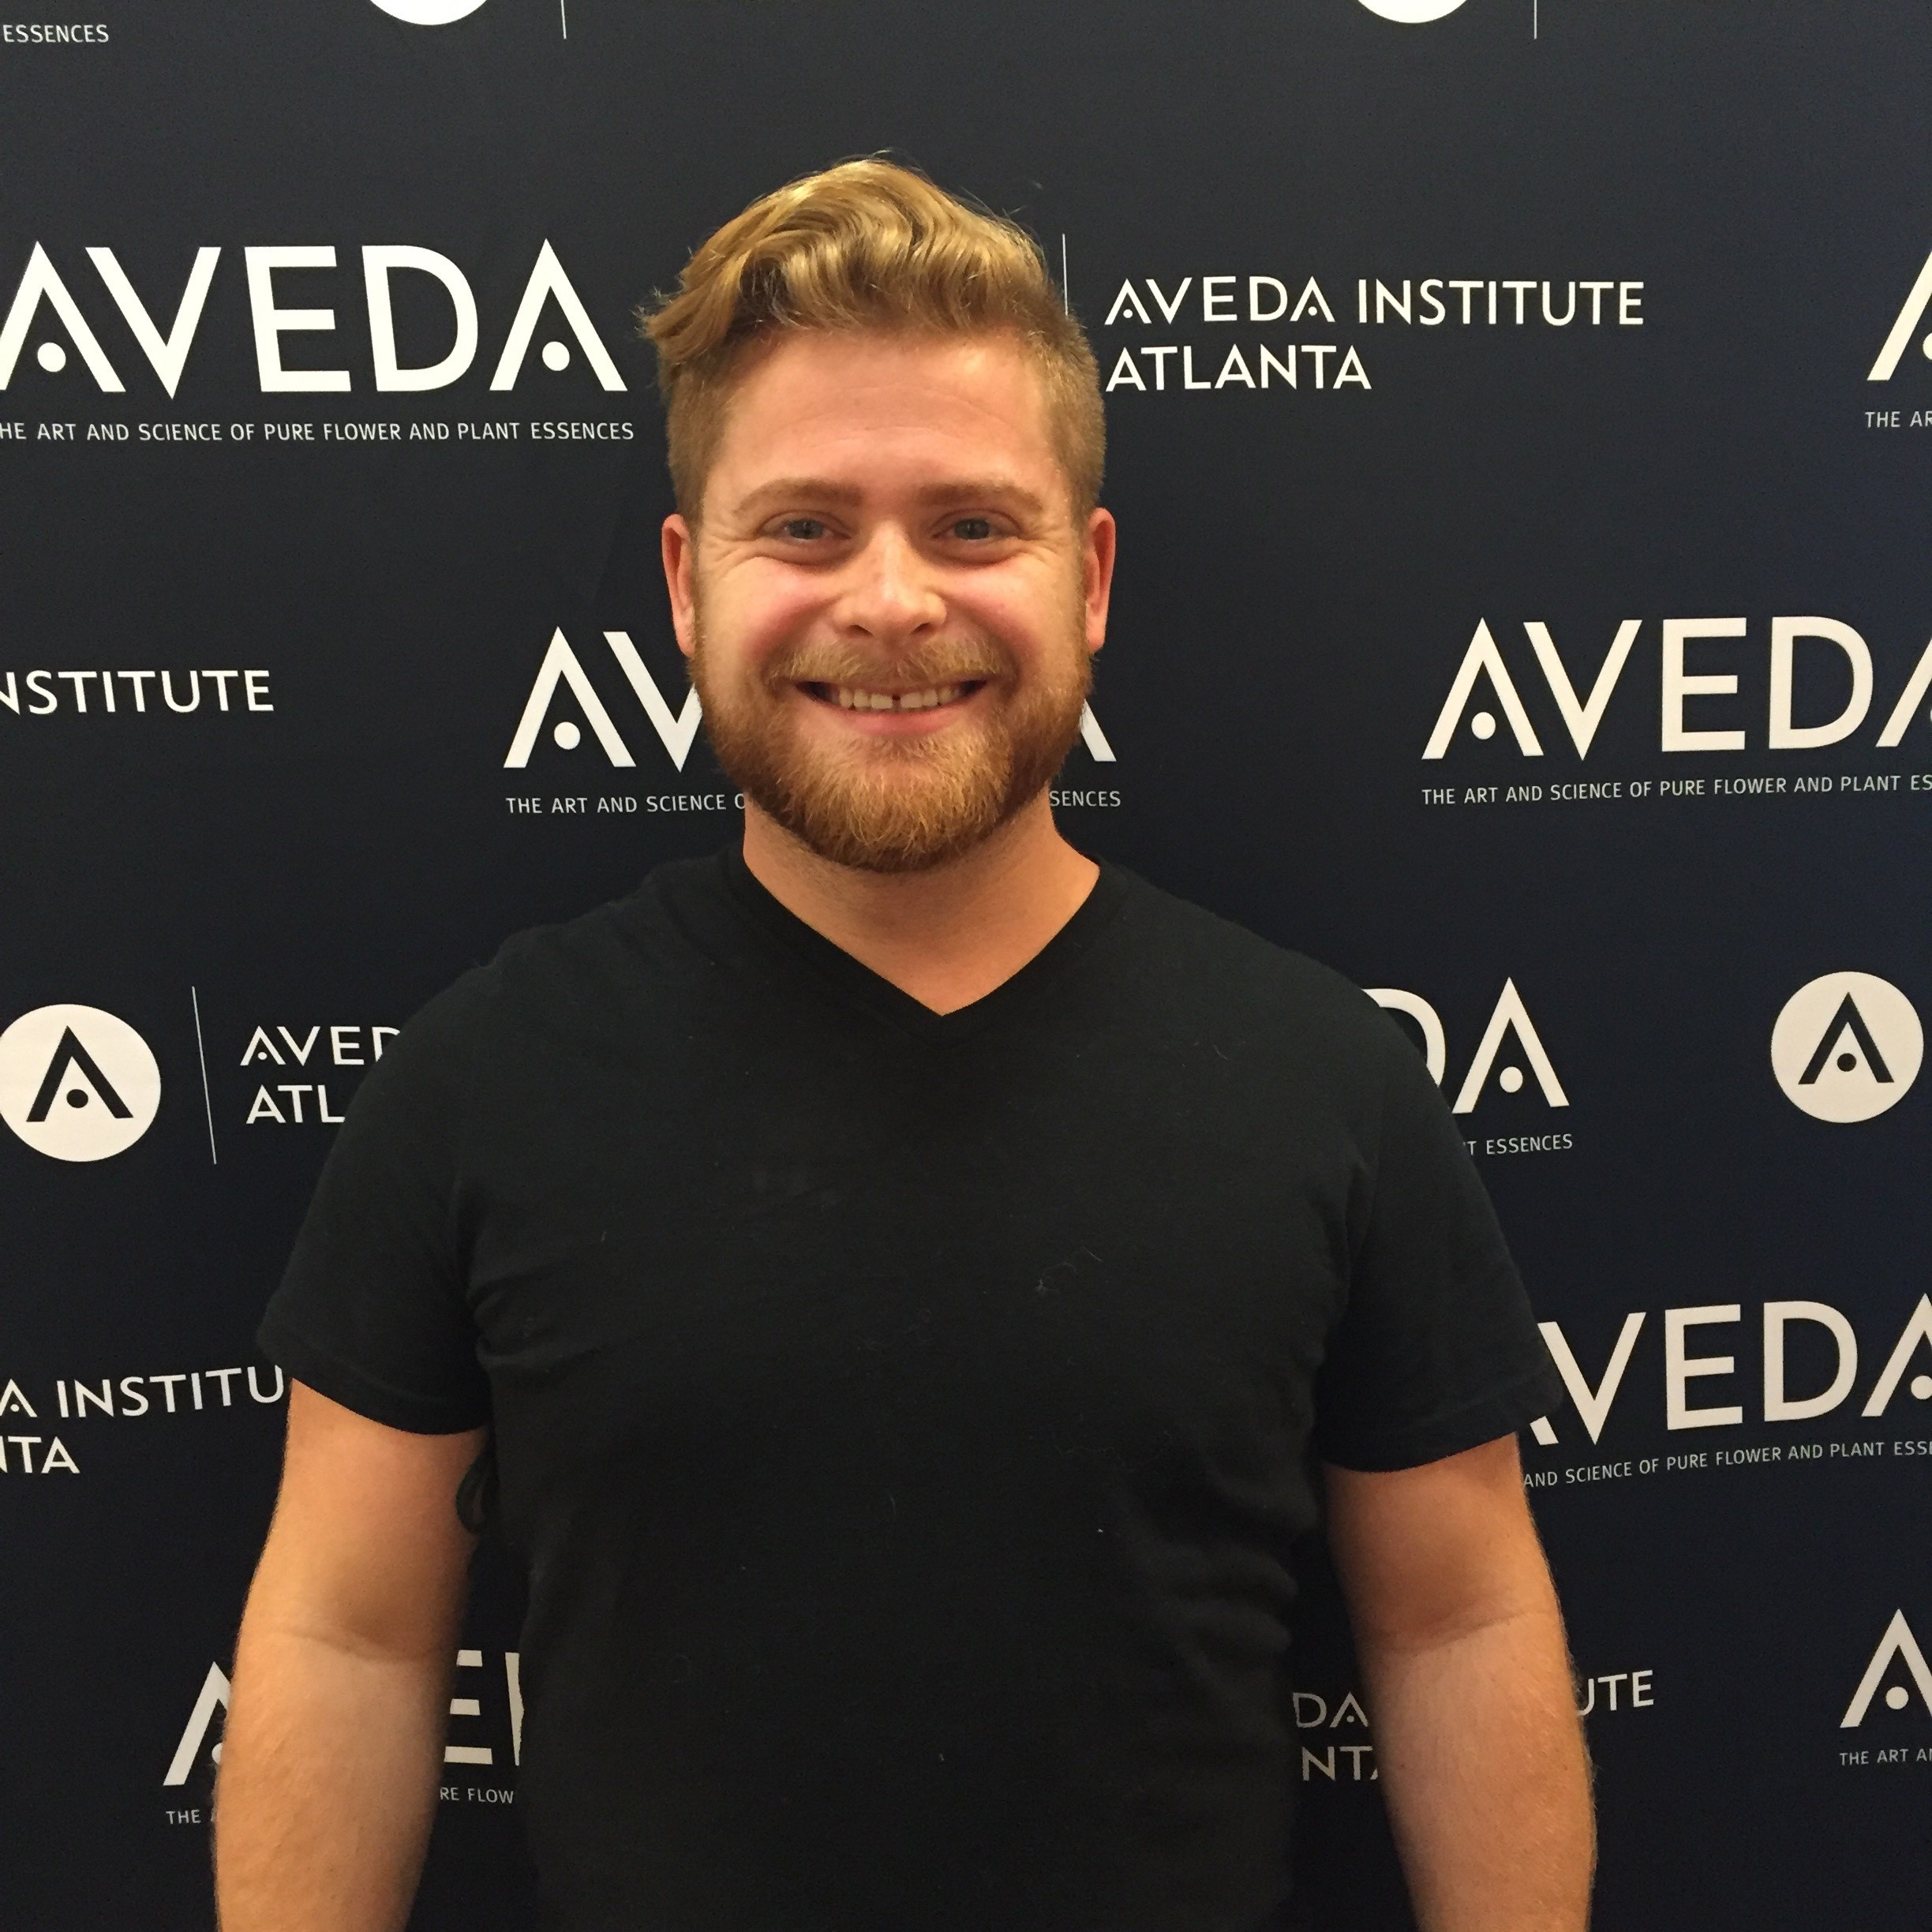 Aveda institute Atlanta